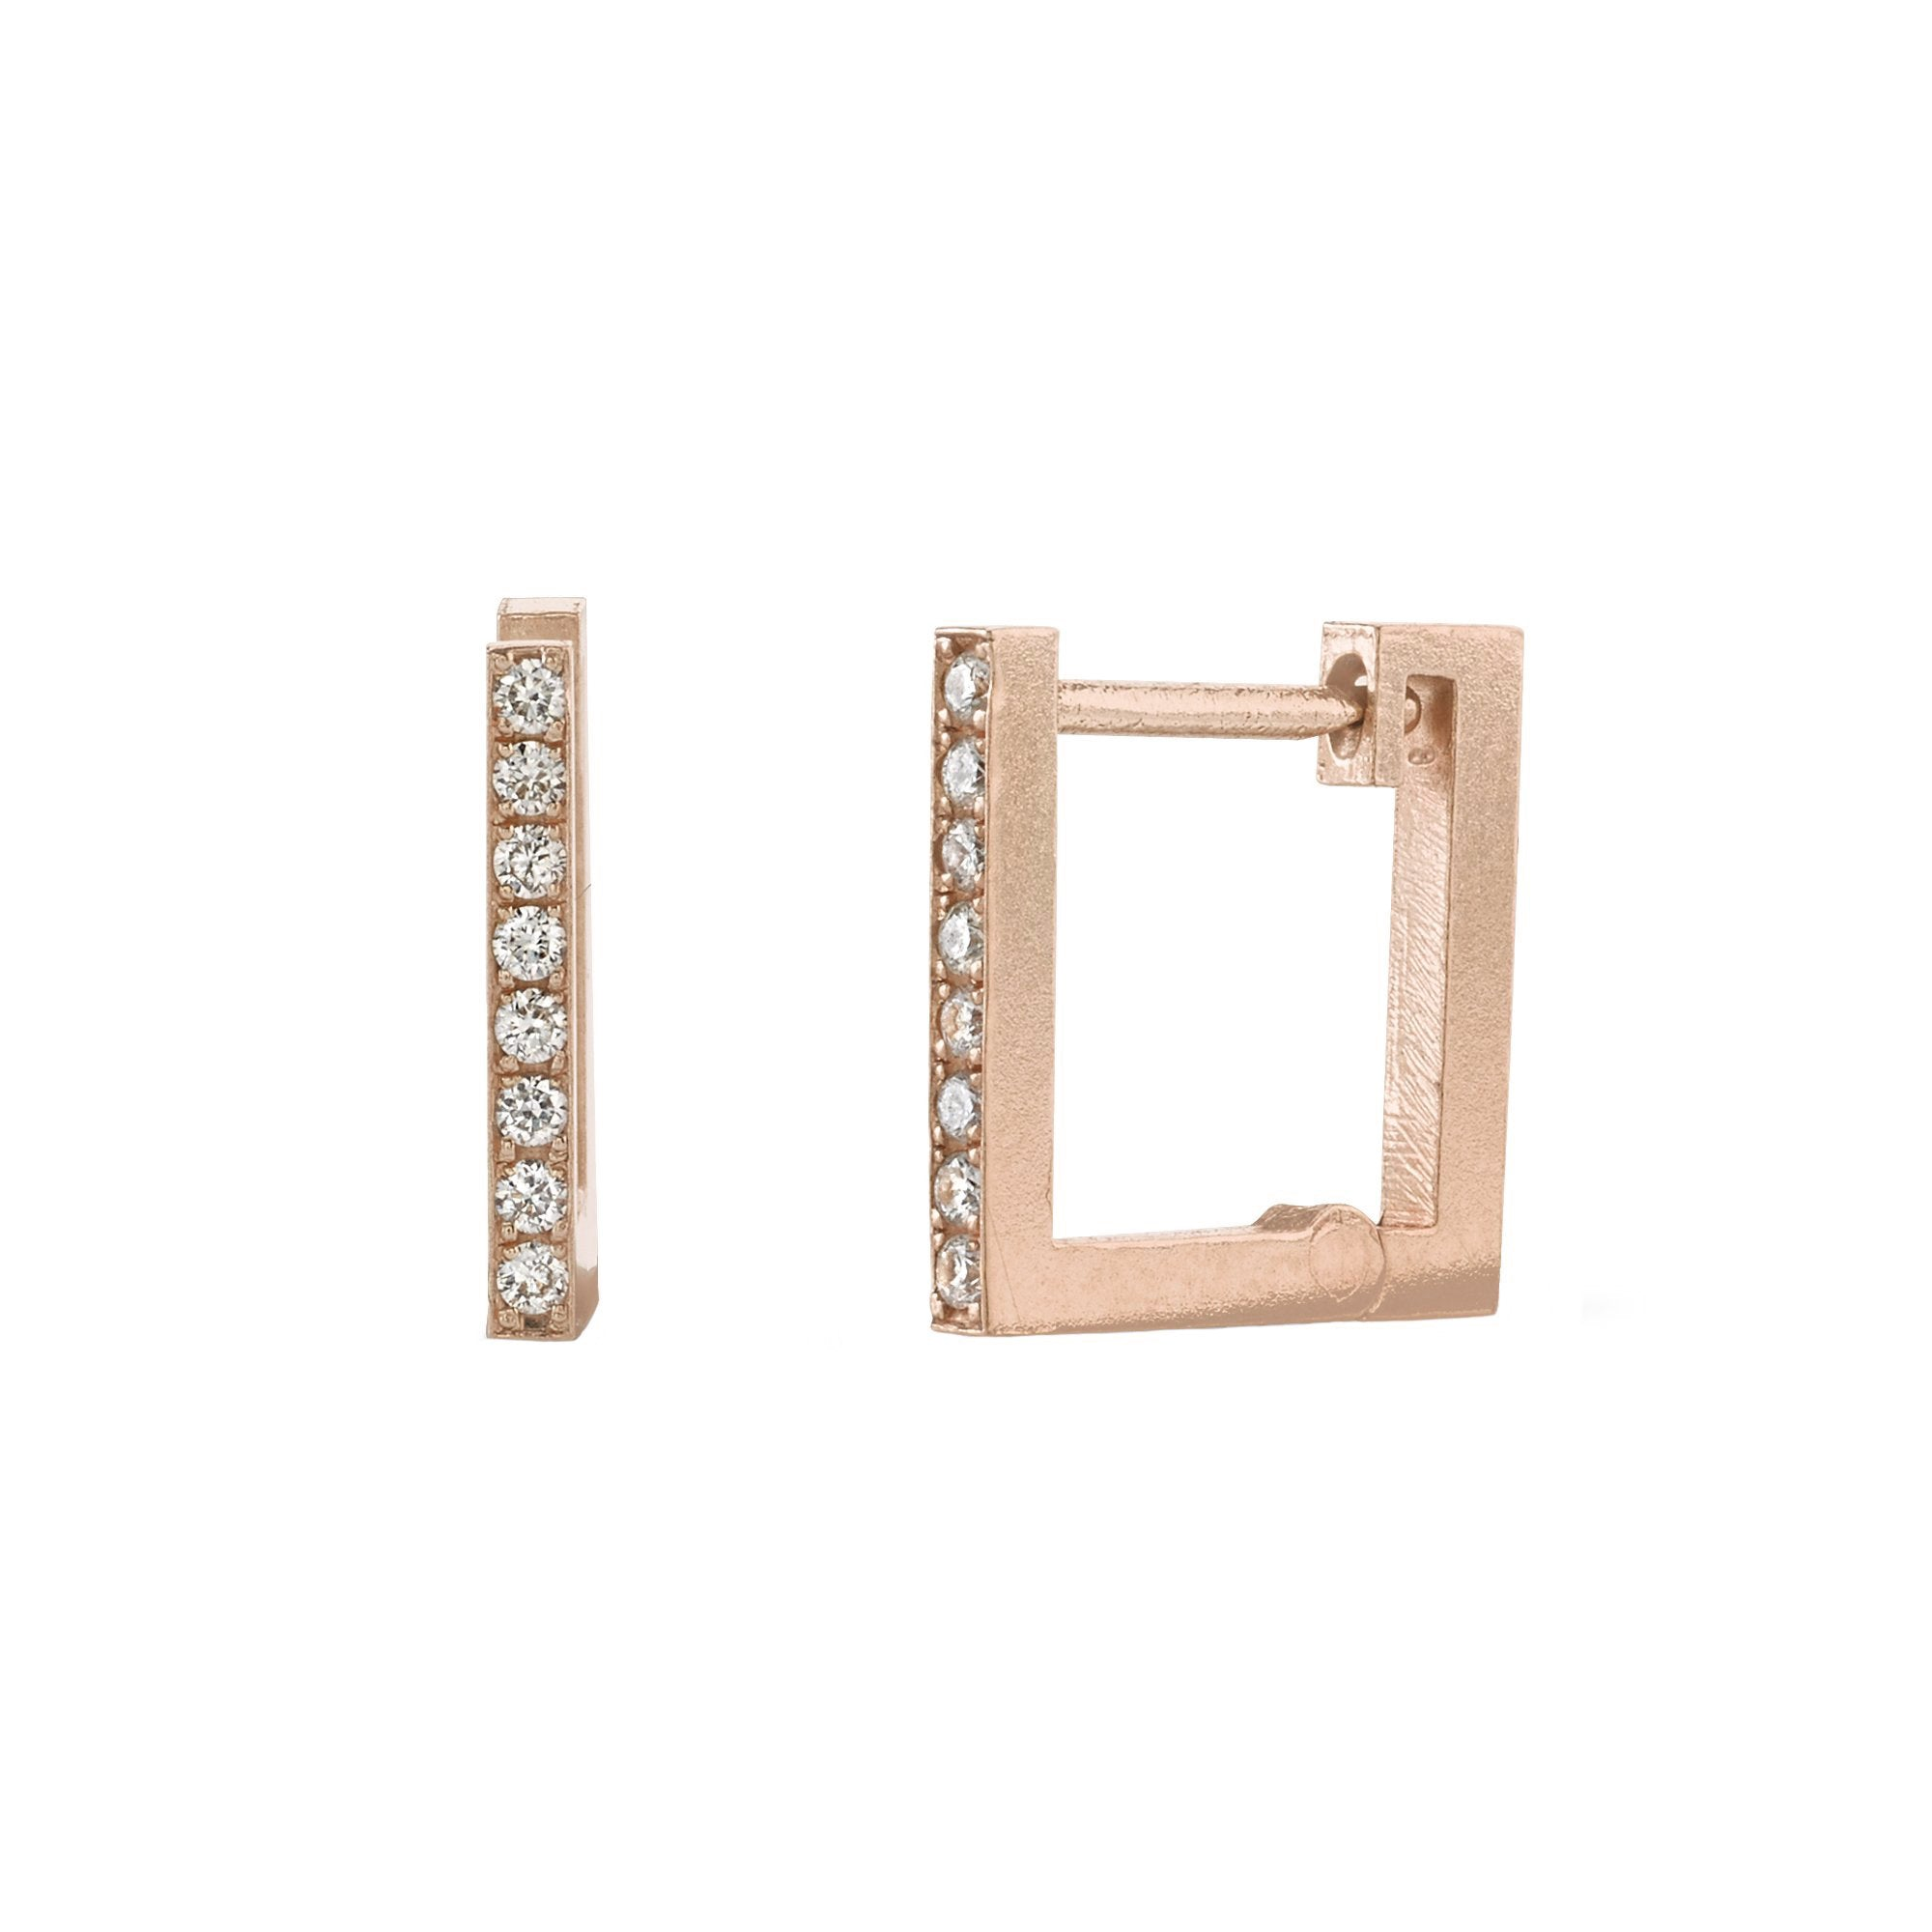 Lizzie Mandler White Diamond Square Huggies - Earrings - Broken English Jewelry